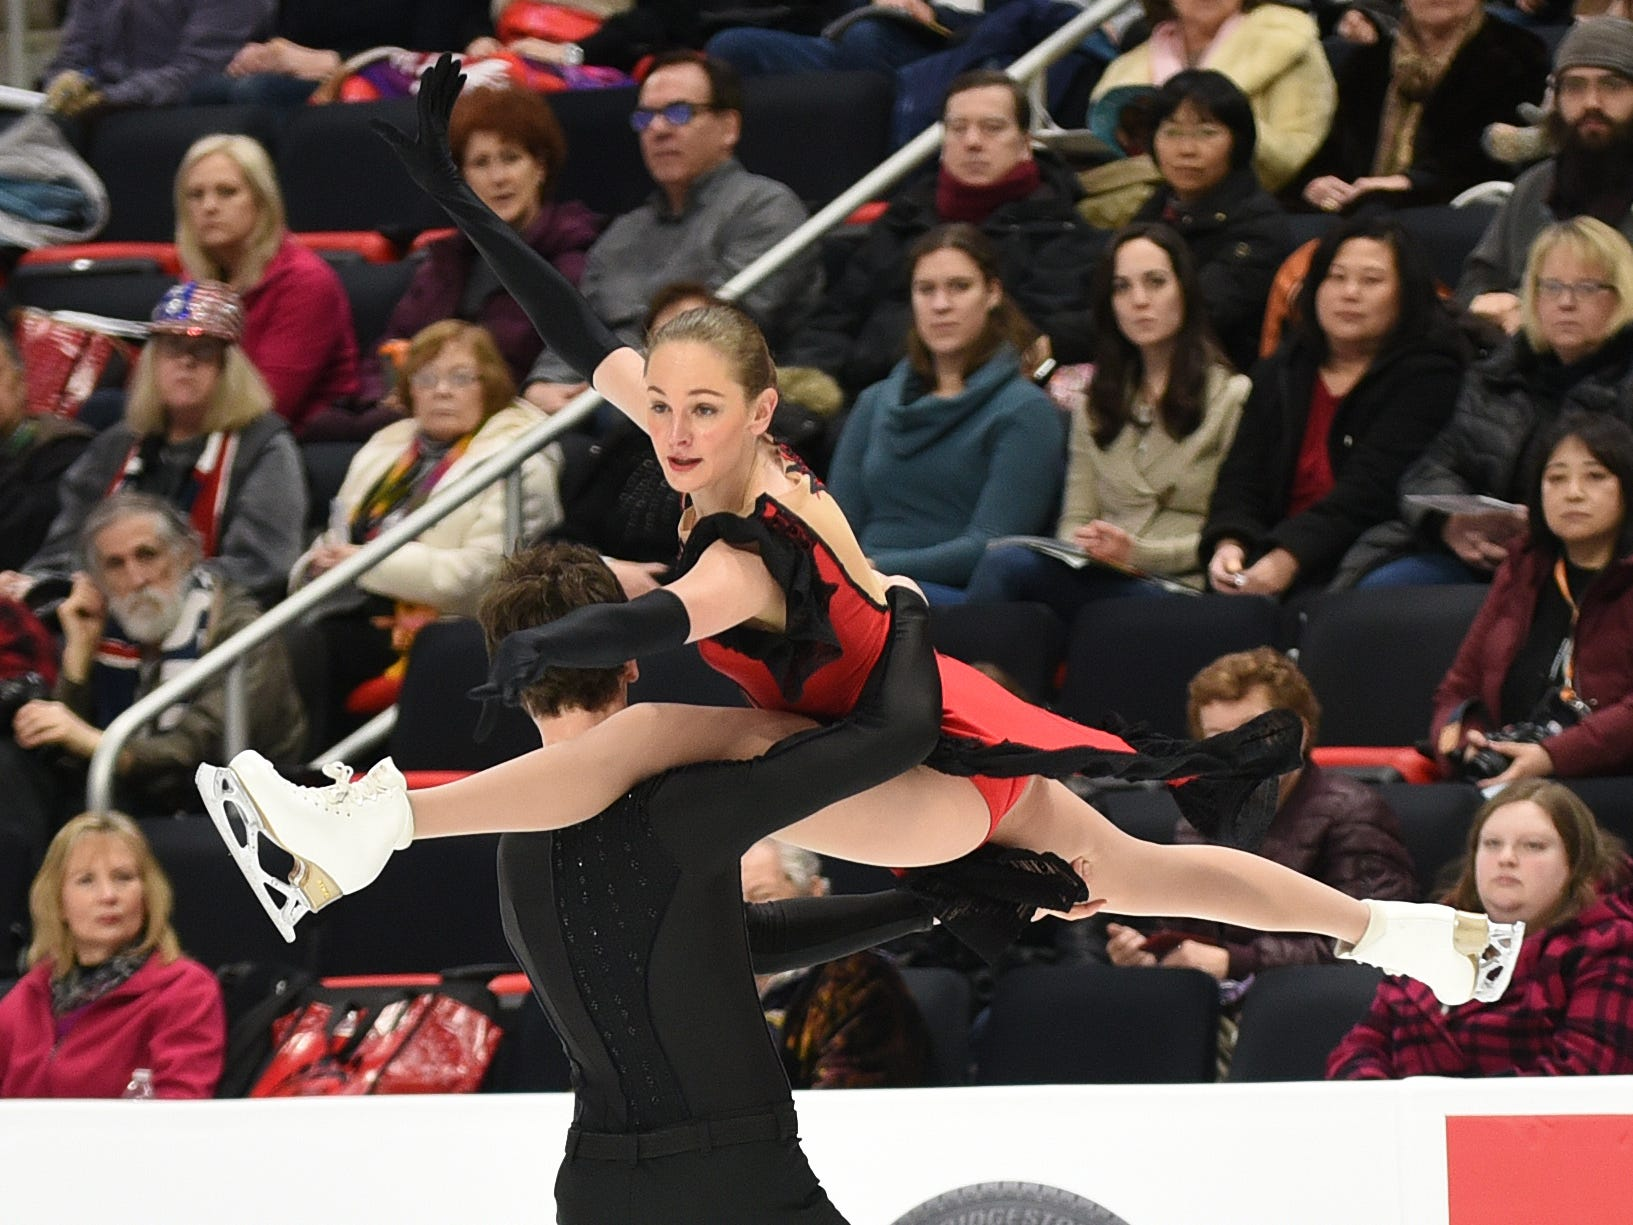 Elicia Reynolds and Stephen Reynolds perform during the rhythm dance competition.